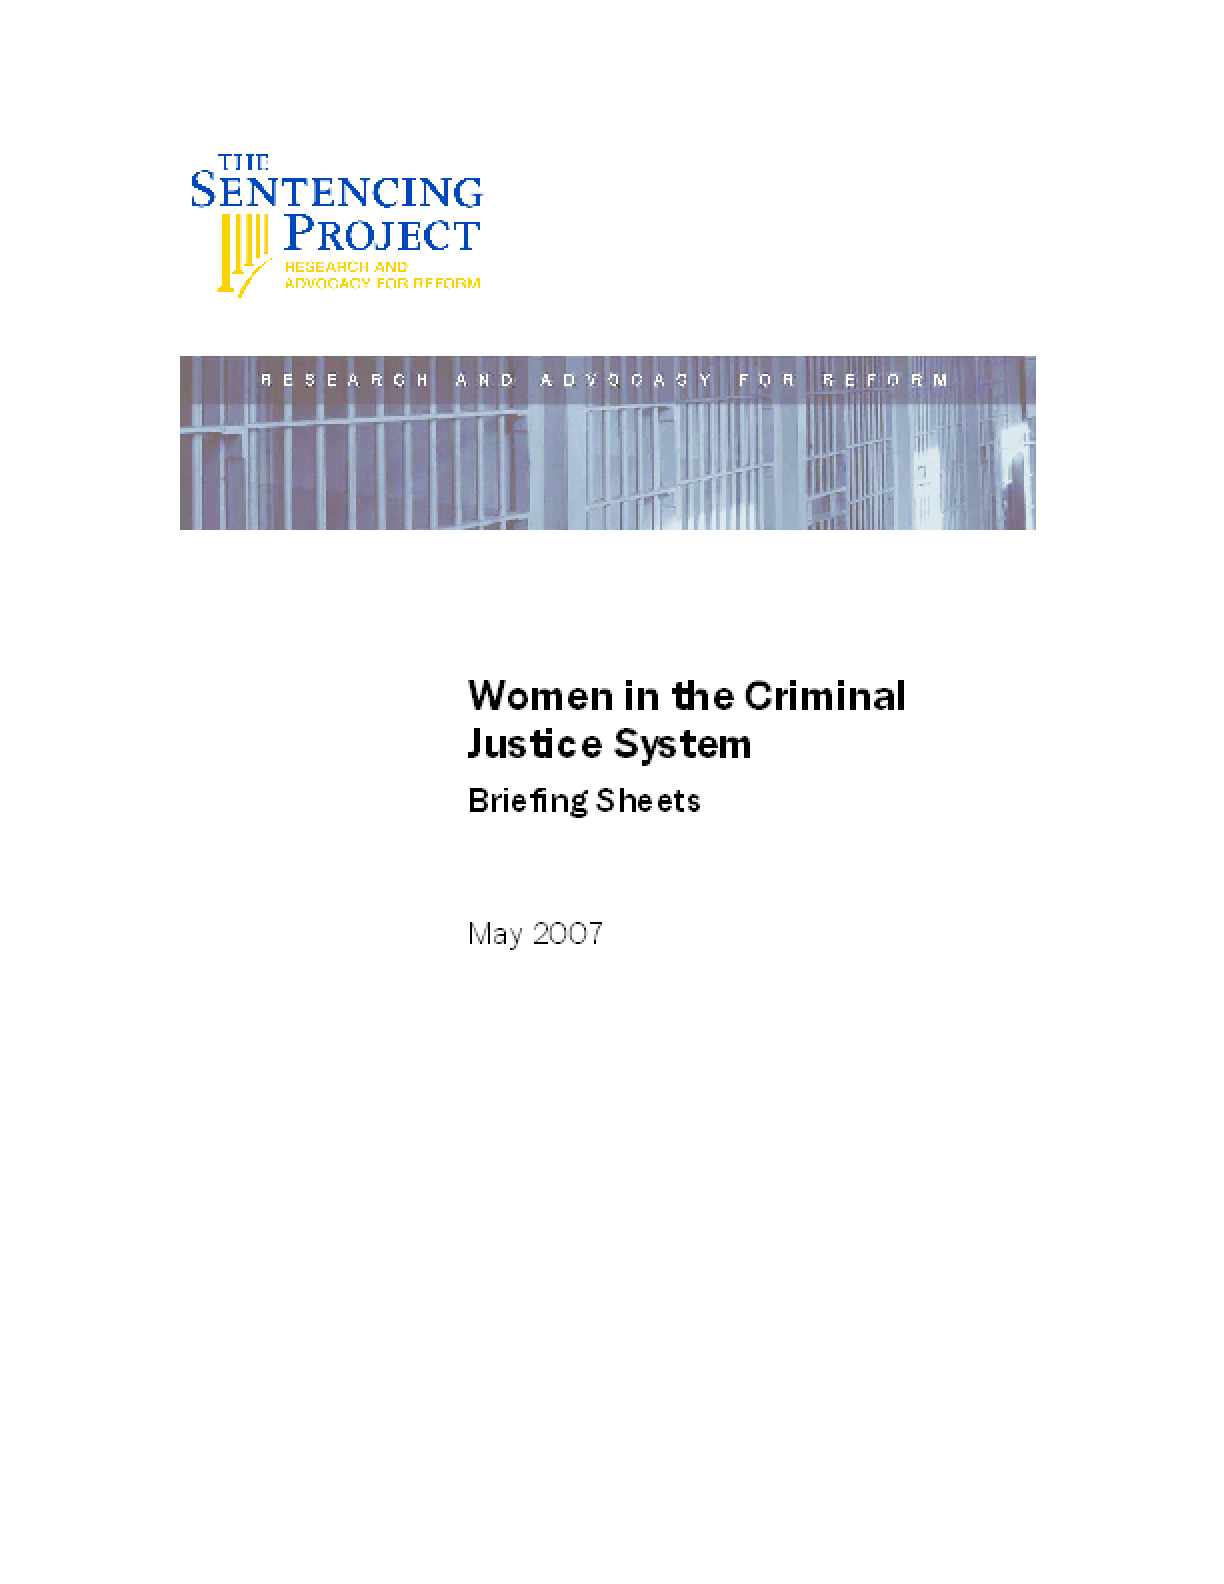 Women in the Criminal Justice System